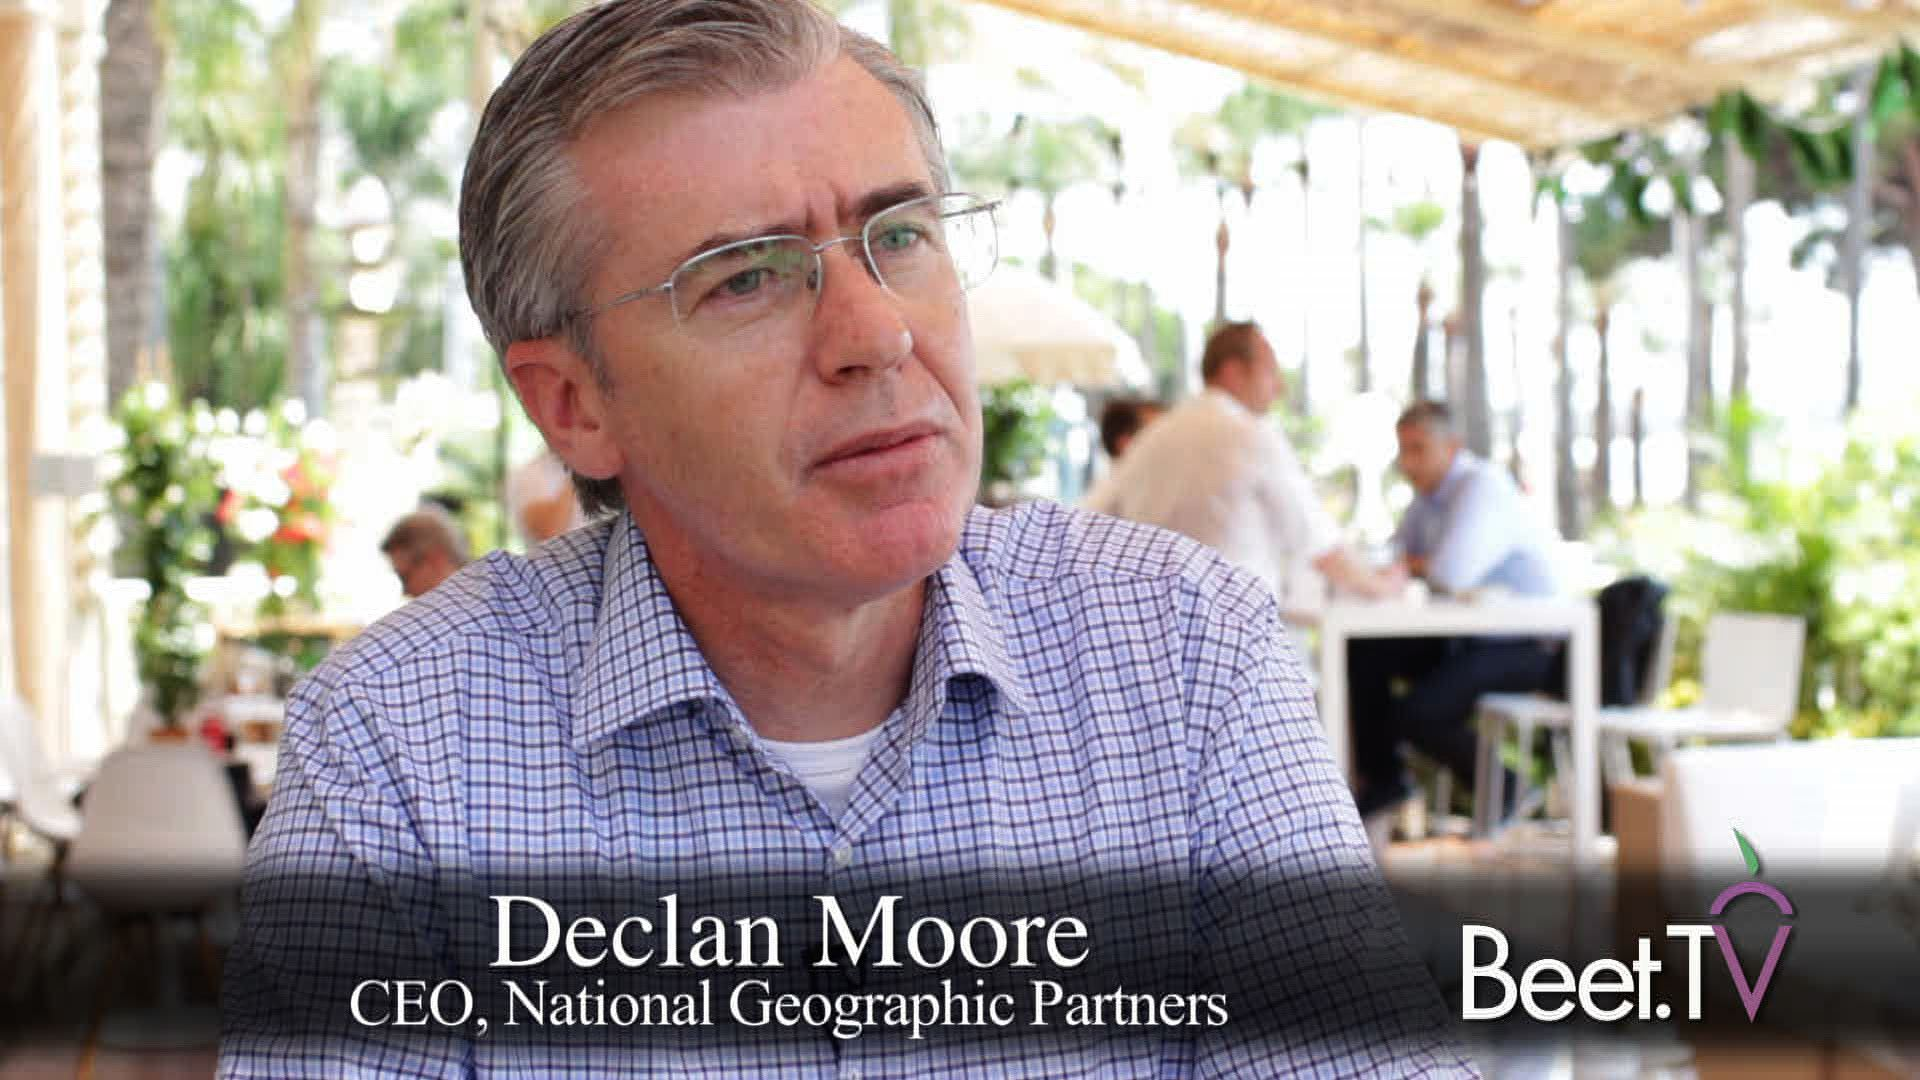 National Geographic's Declan Moore: Leading National Conversations, Integrating Brands With Care